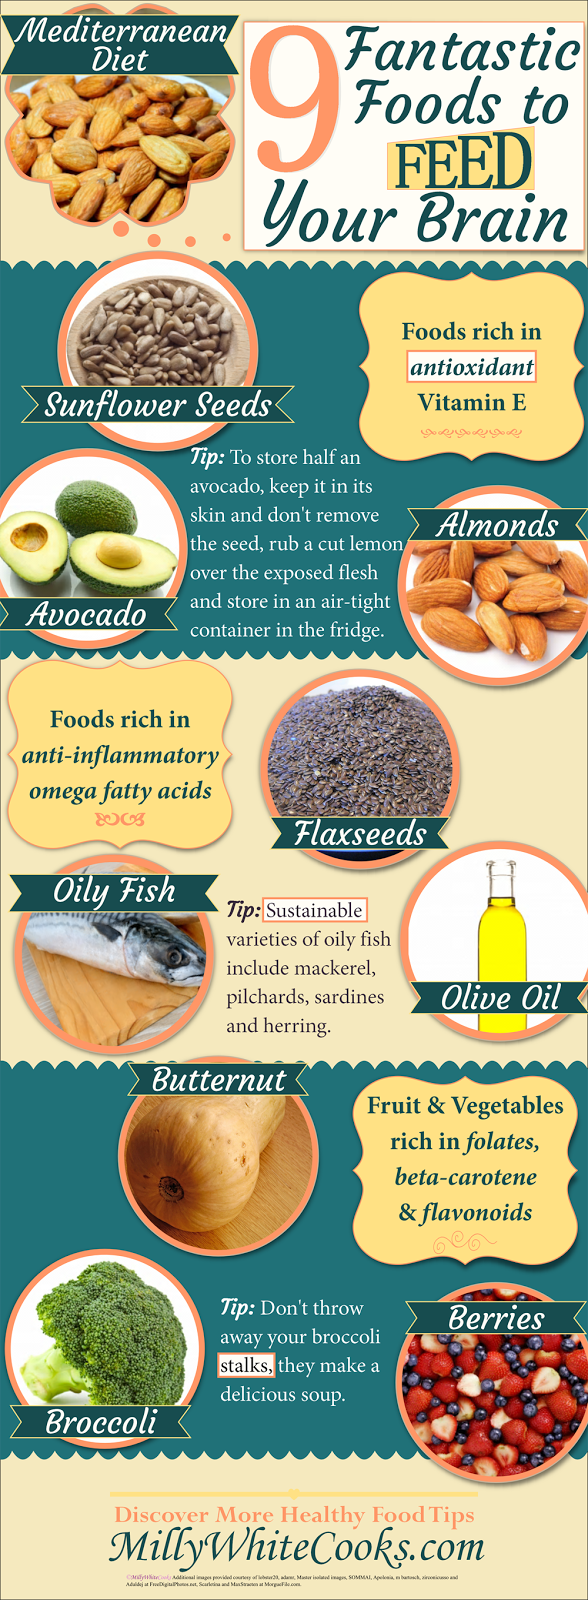 9 Fantastic Foods to Feed Your Brain on the Mediterranean Diet Infographic